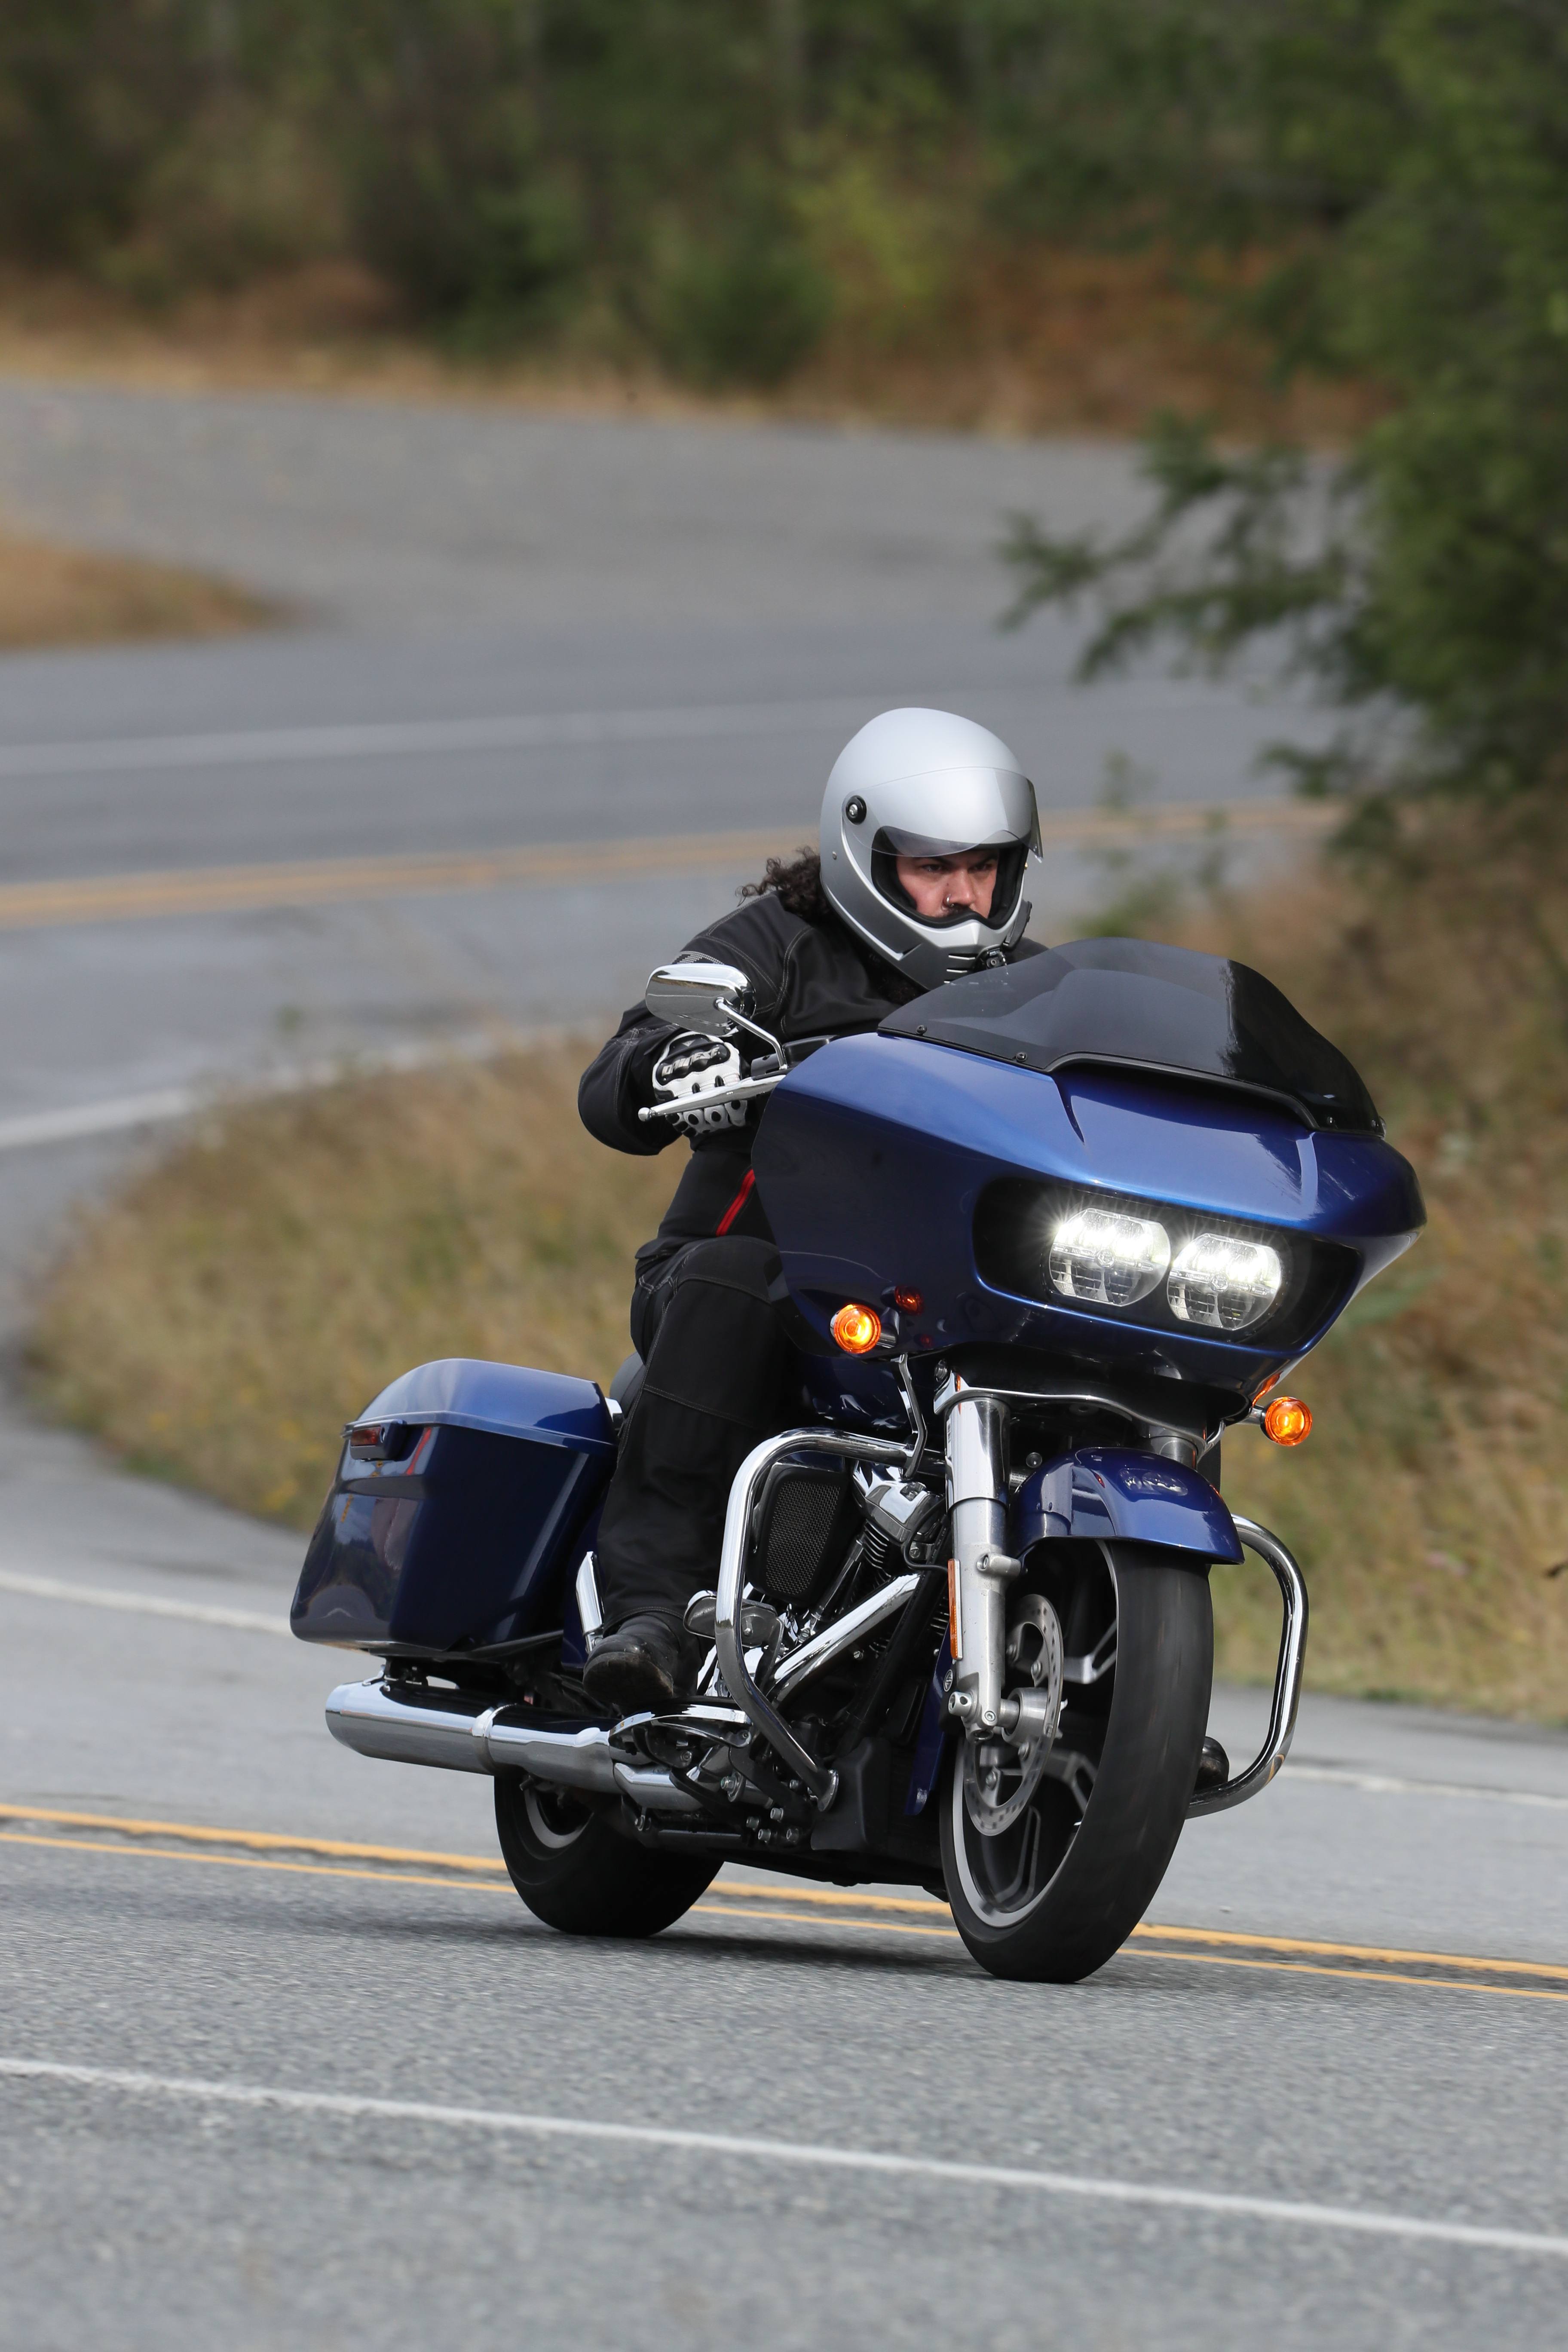 Inside and astride the Harley-Davidson Milwaukee-Eight